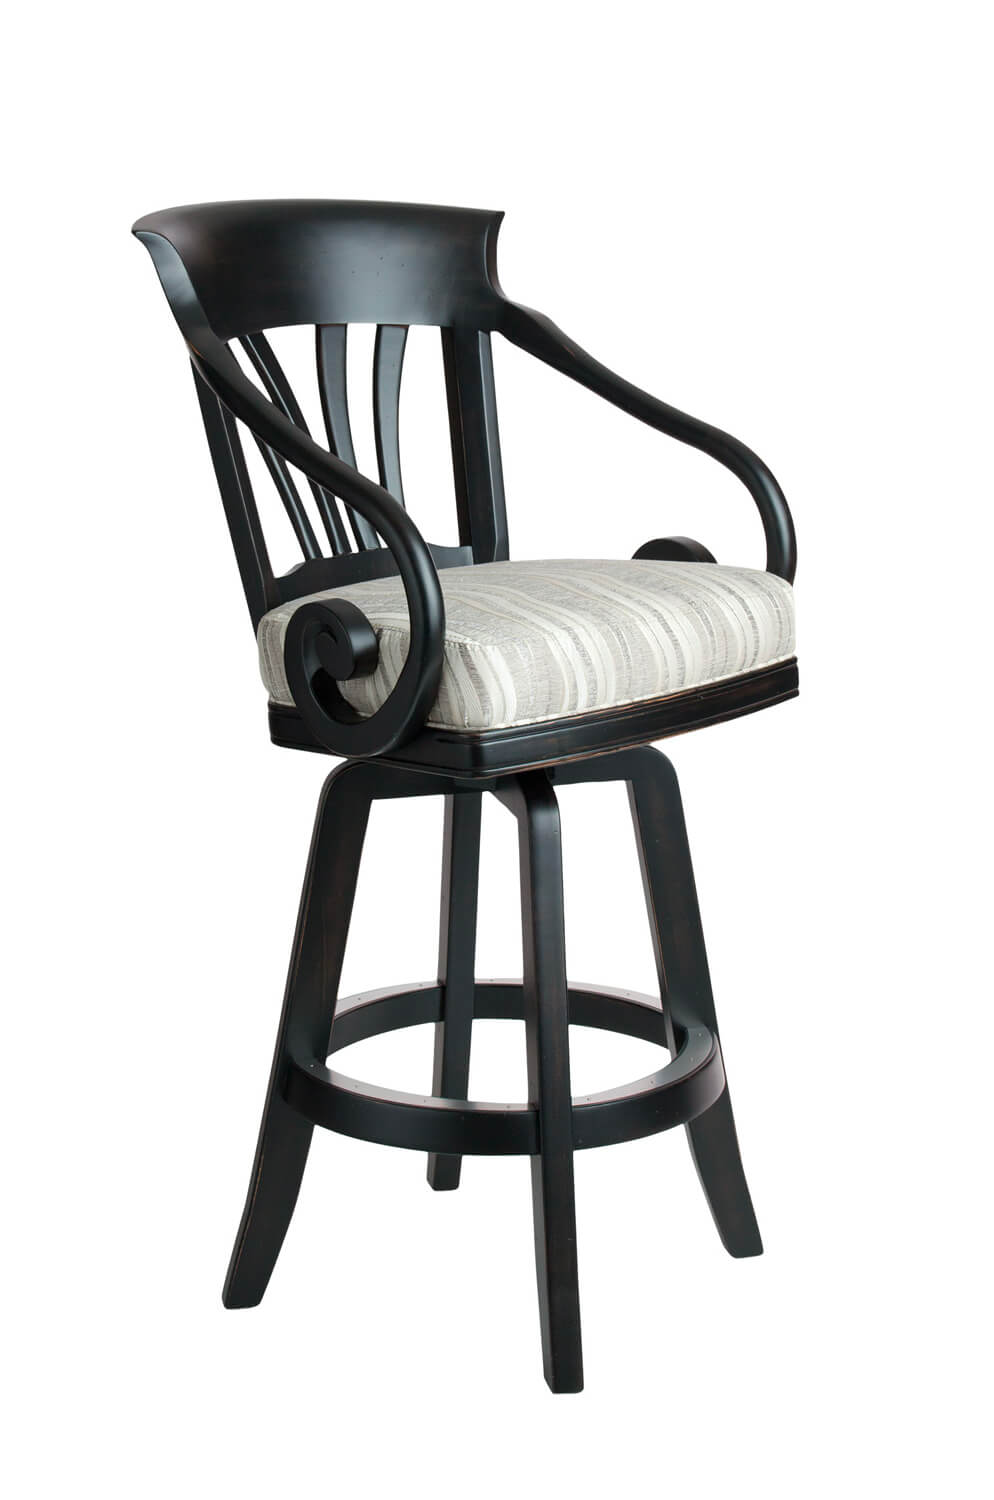 Nomad Maple Wood Upholstered Swivel Stool with Arms